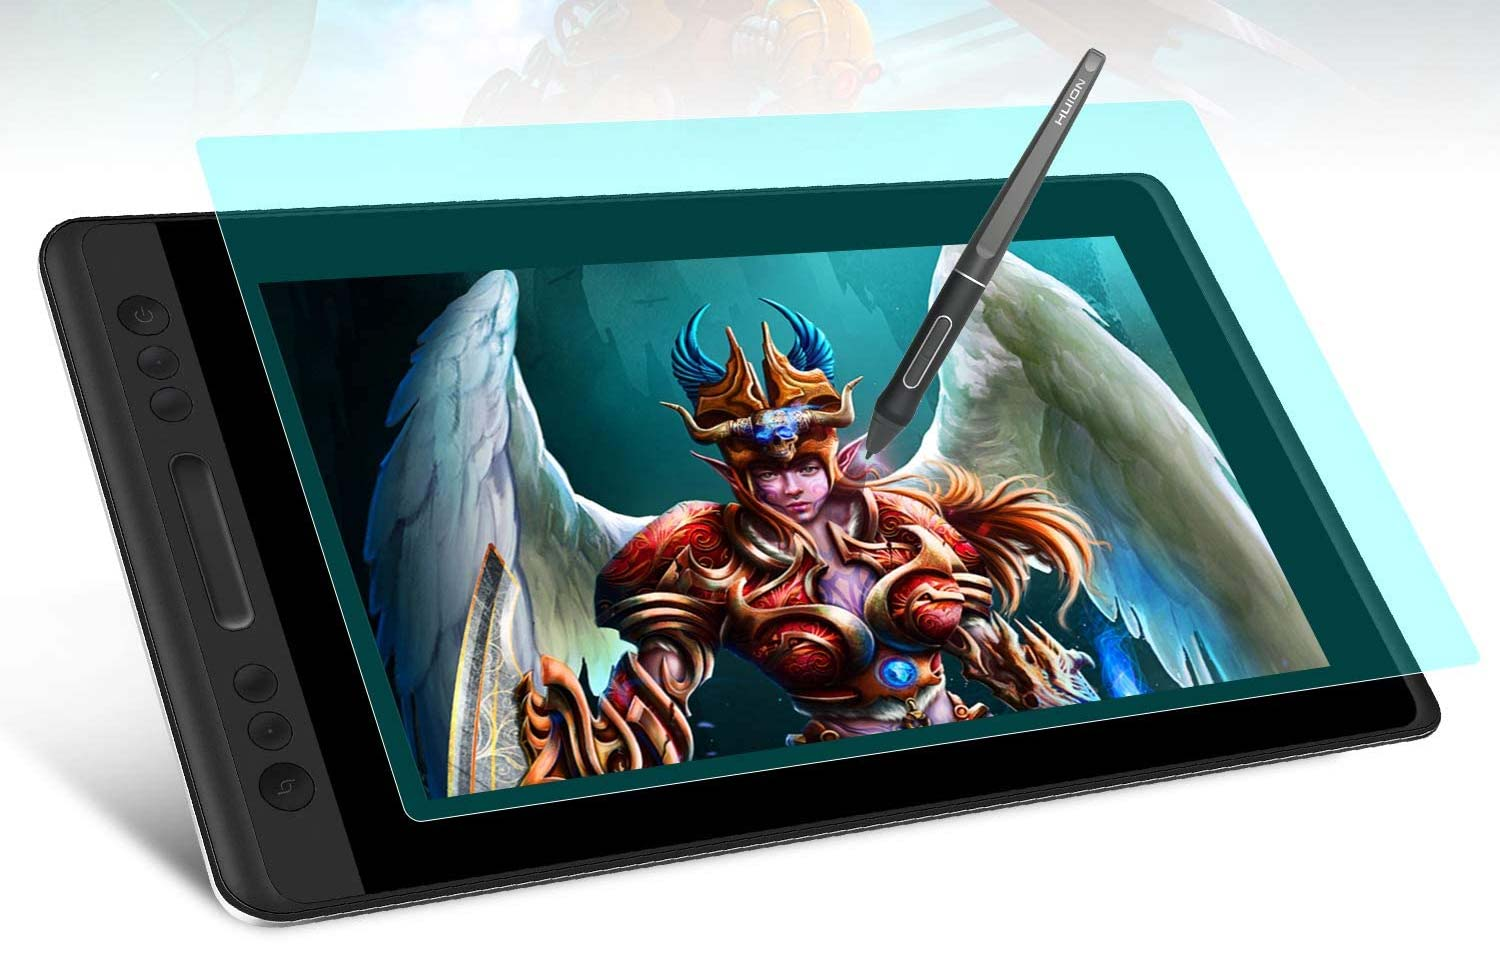 Huion Kamvas Pro 13 Stift-Display